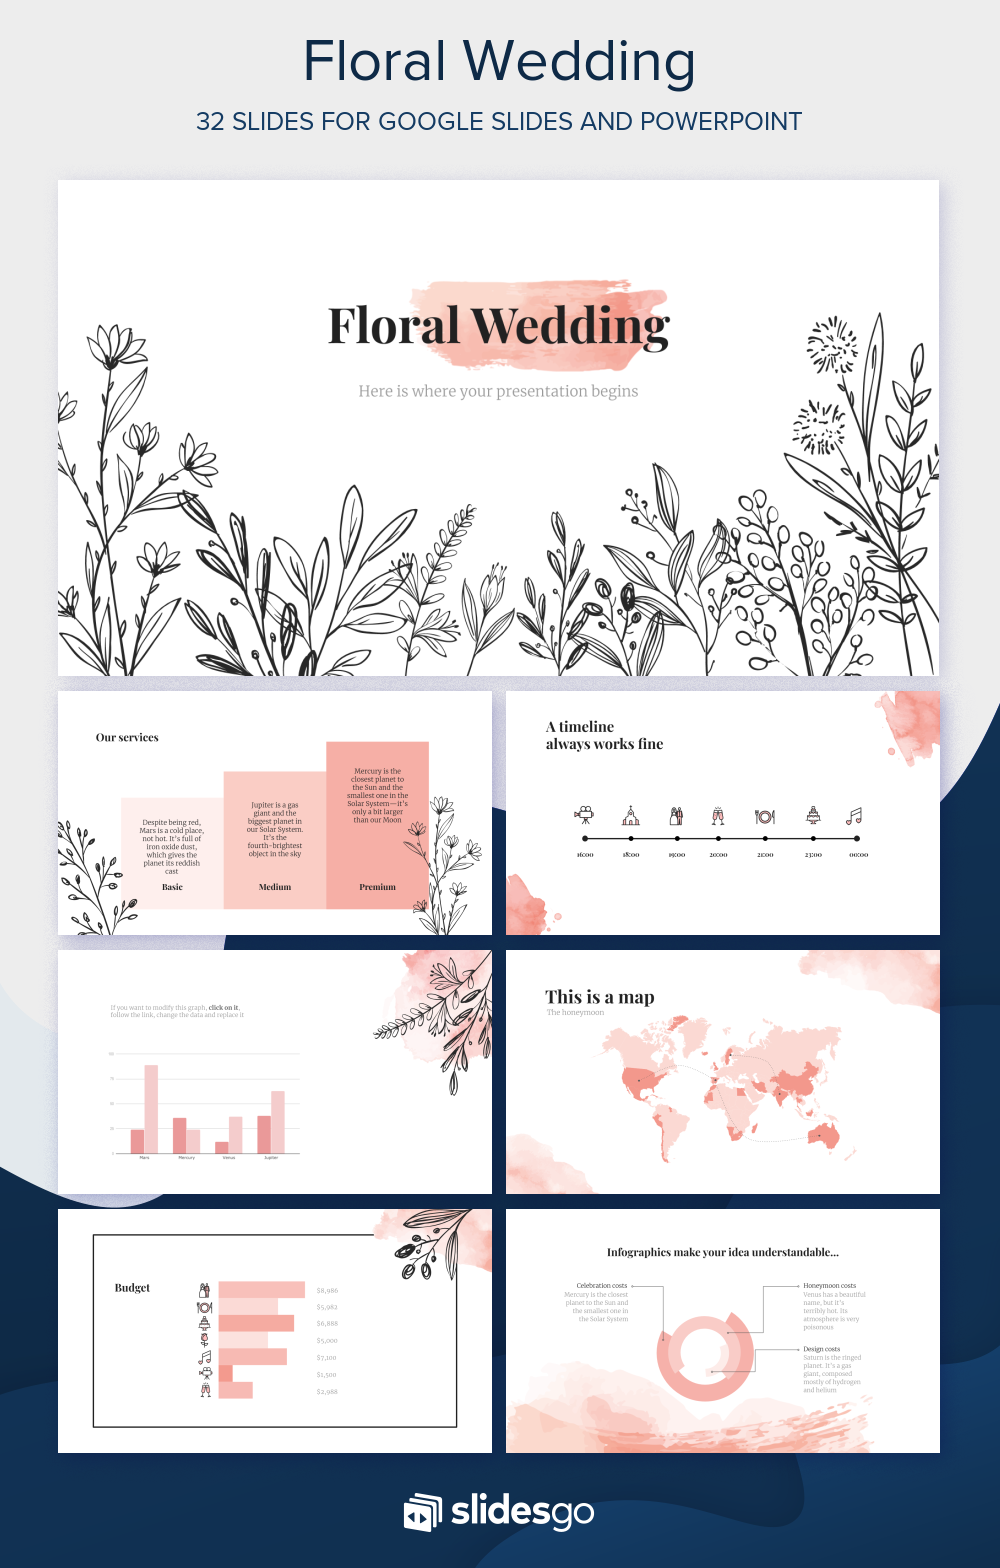 100% free template available for Google Slides and ...